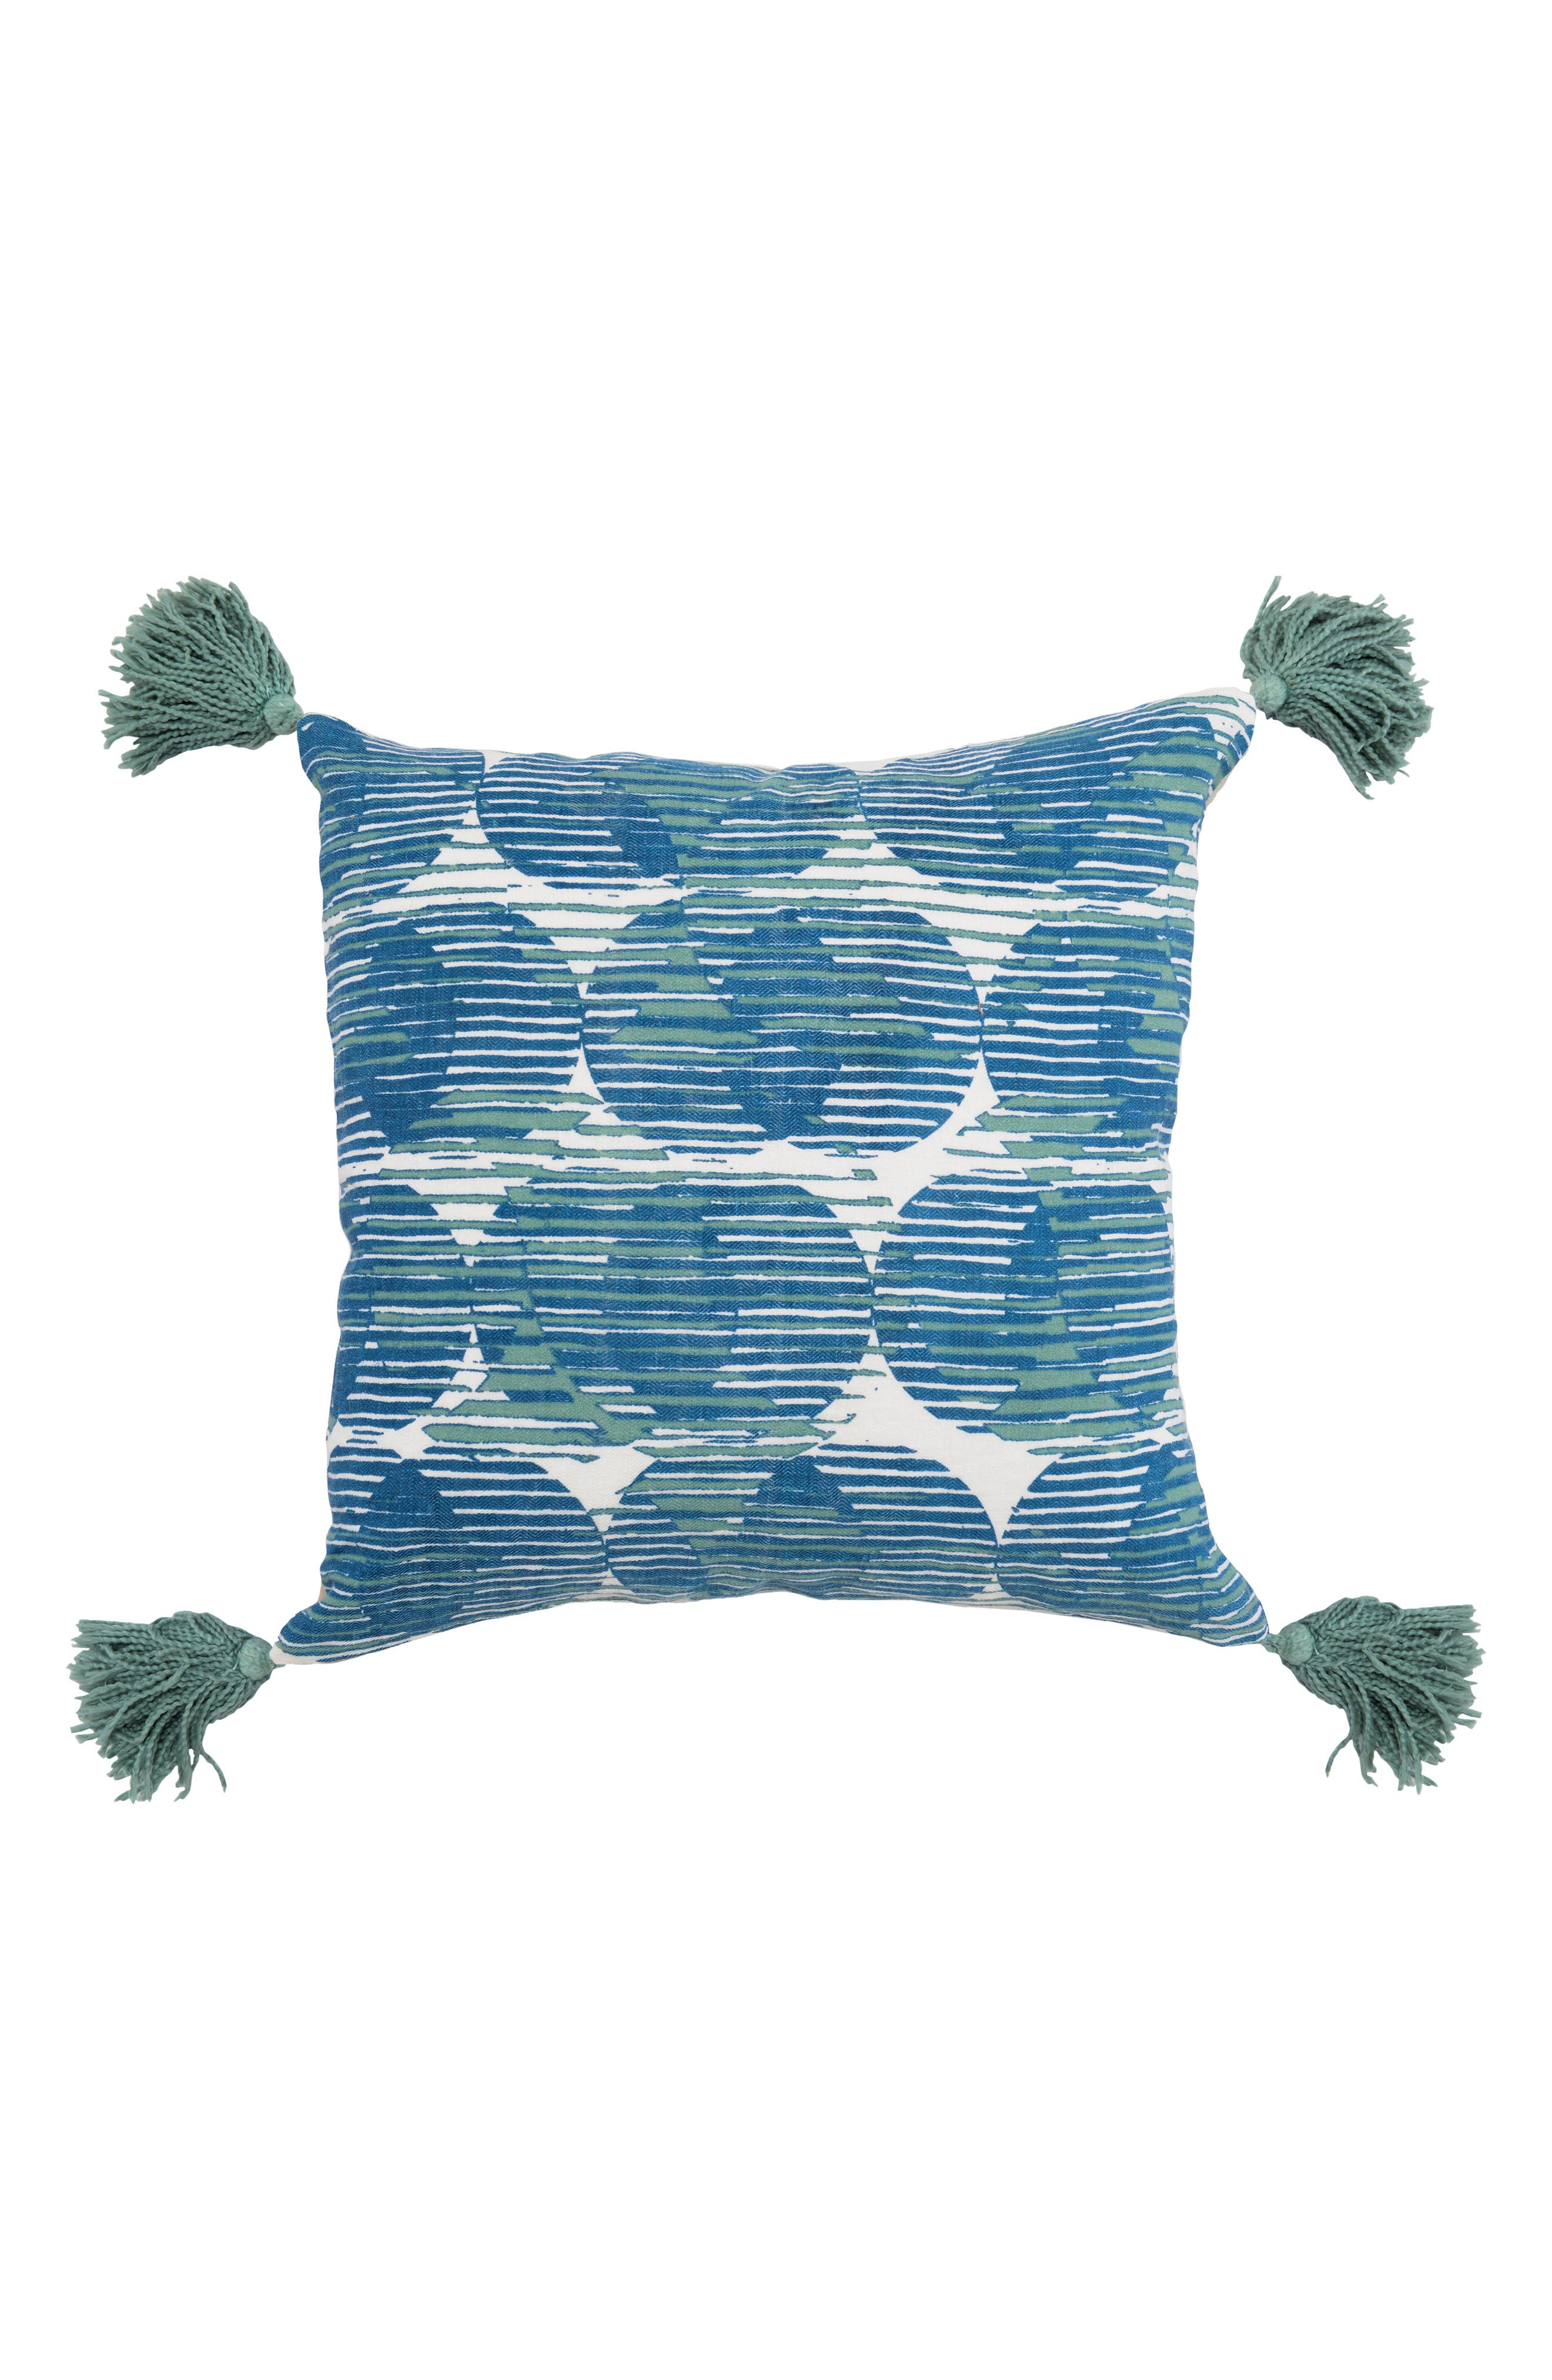 Olympia Accent Pillow,                             Main thumbnail 1, color,                             ARTIC BLUE